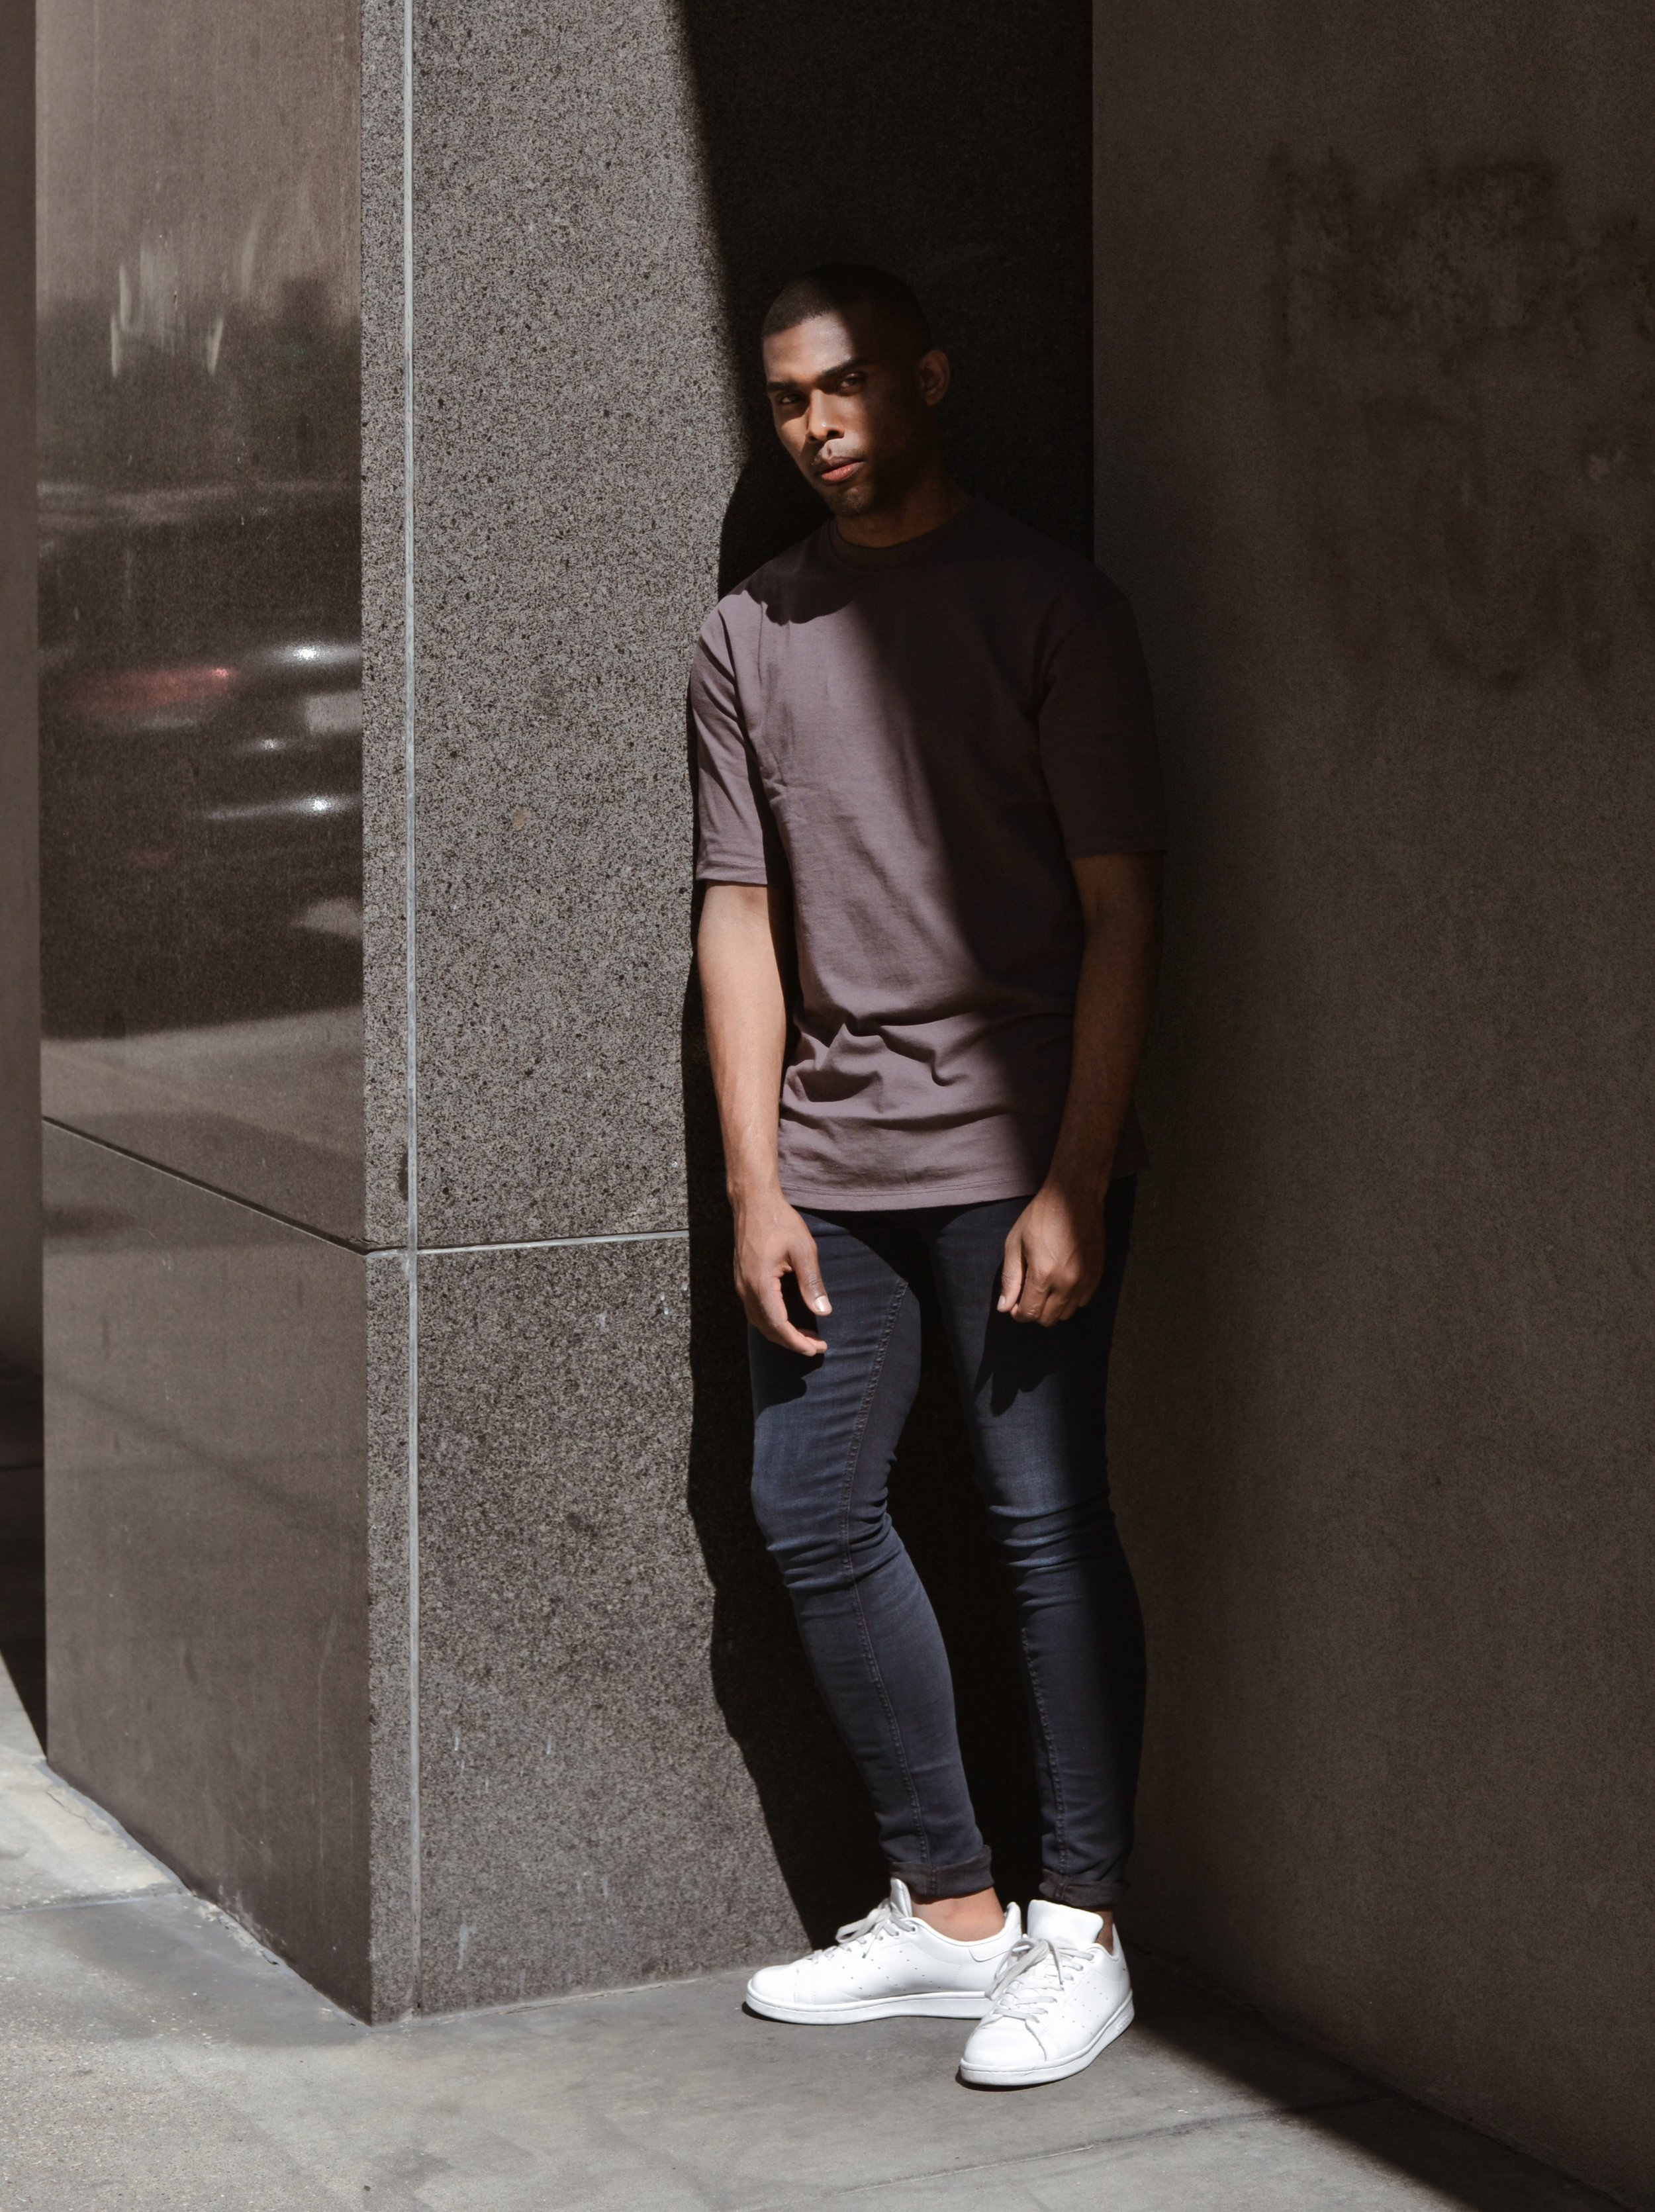 The-Look-Principle-Topman-Denim-A Celebration-Of-The-Fabric-We Live-In-8.jpg